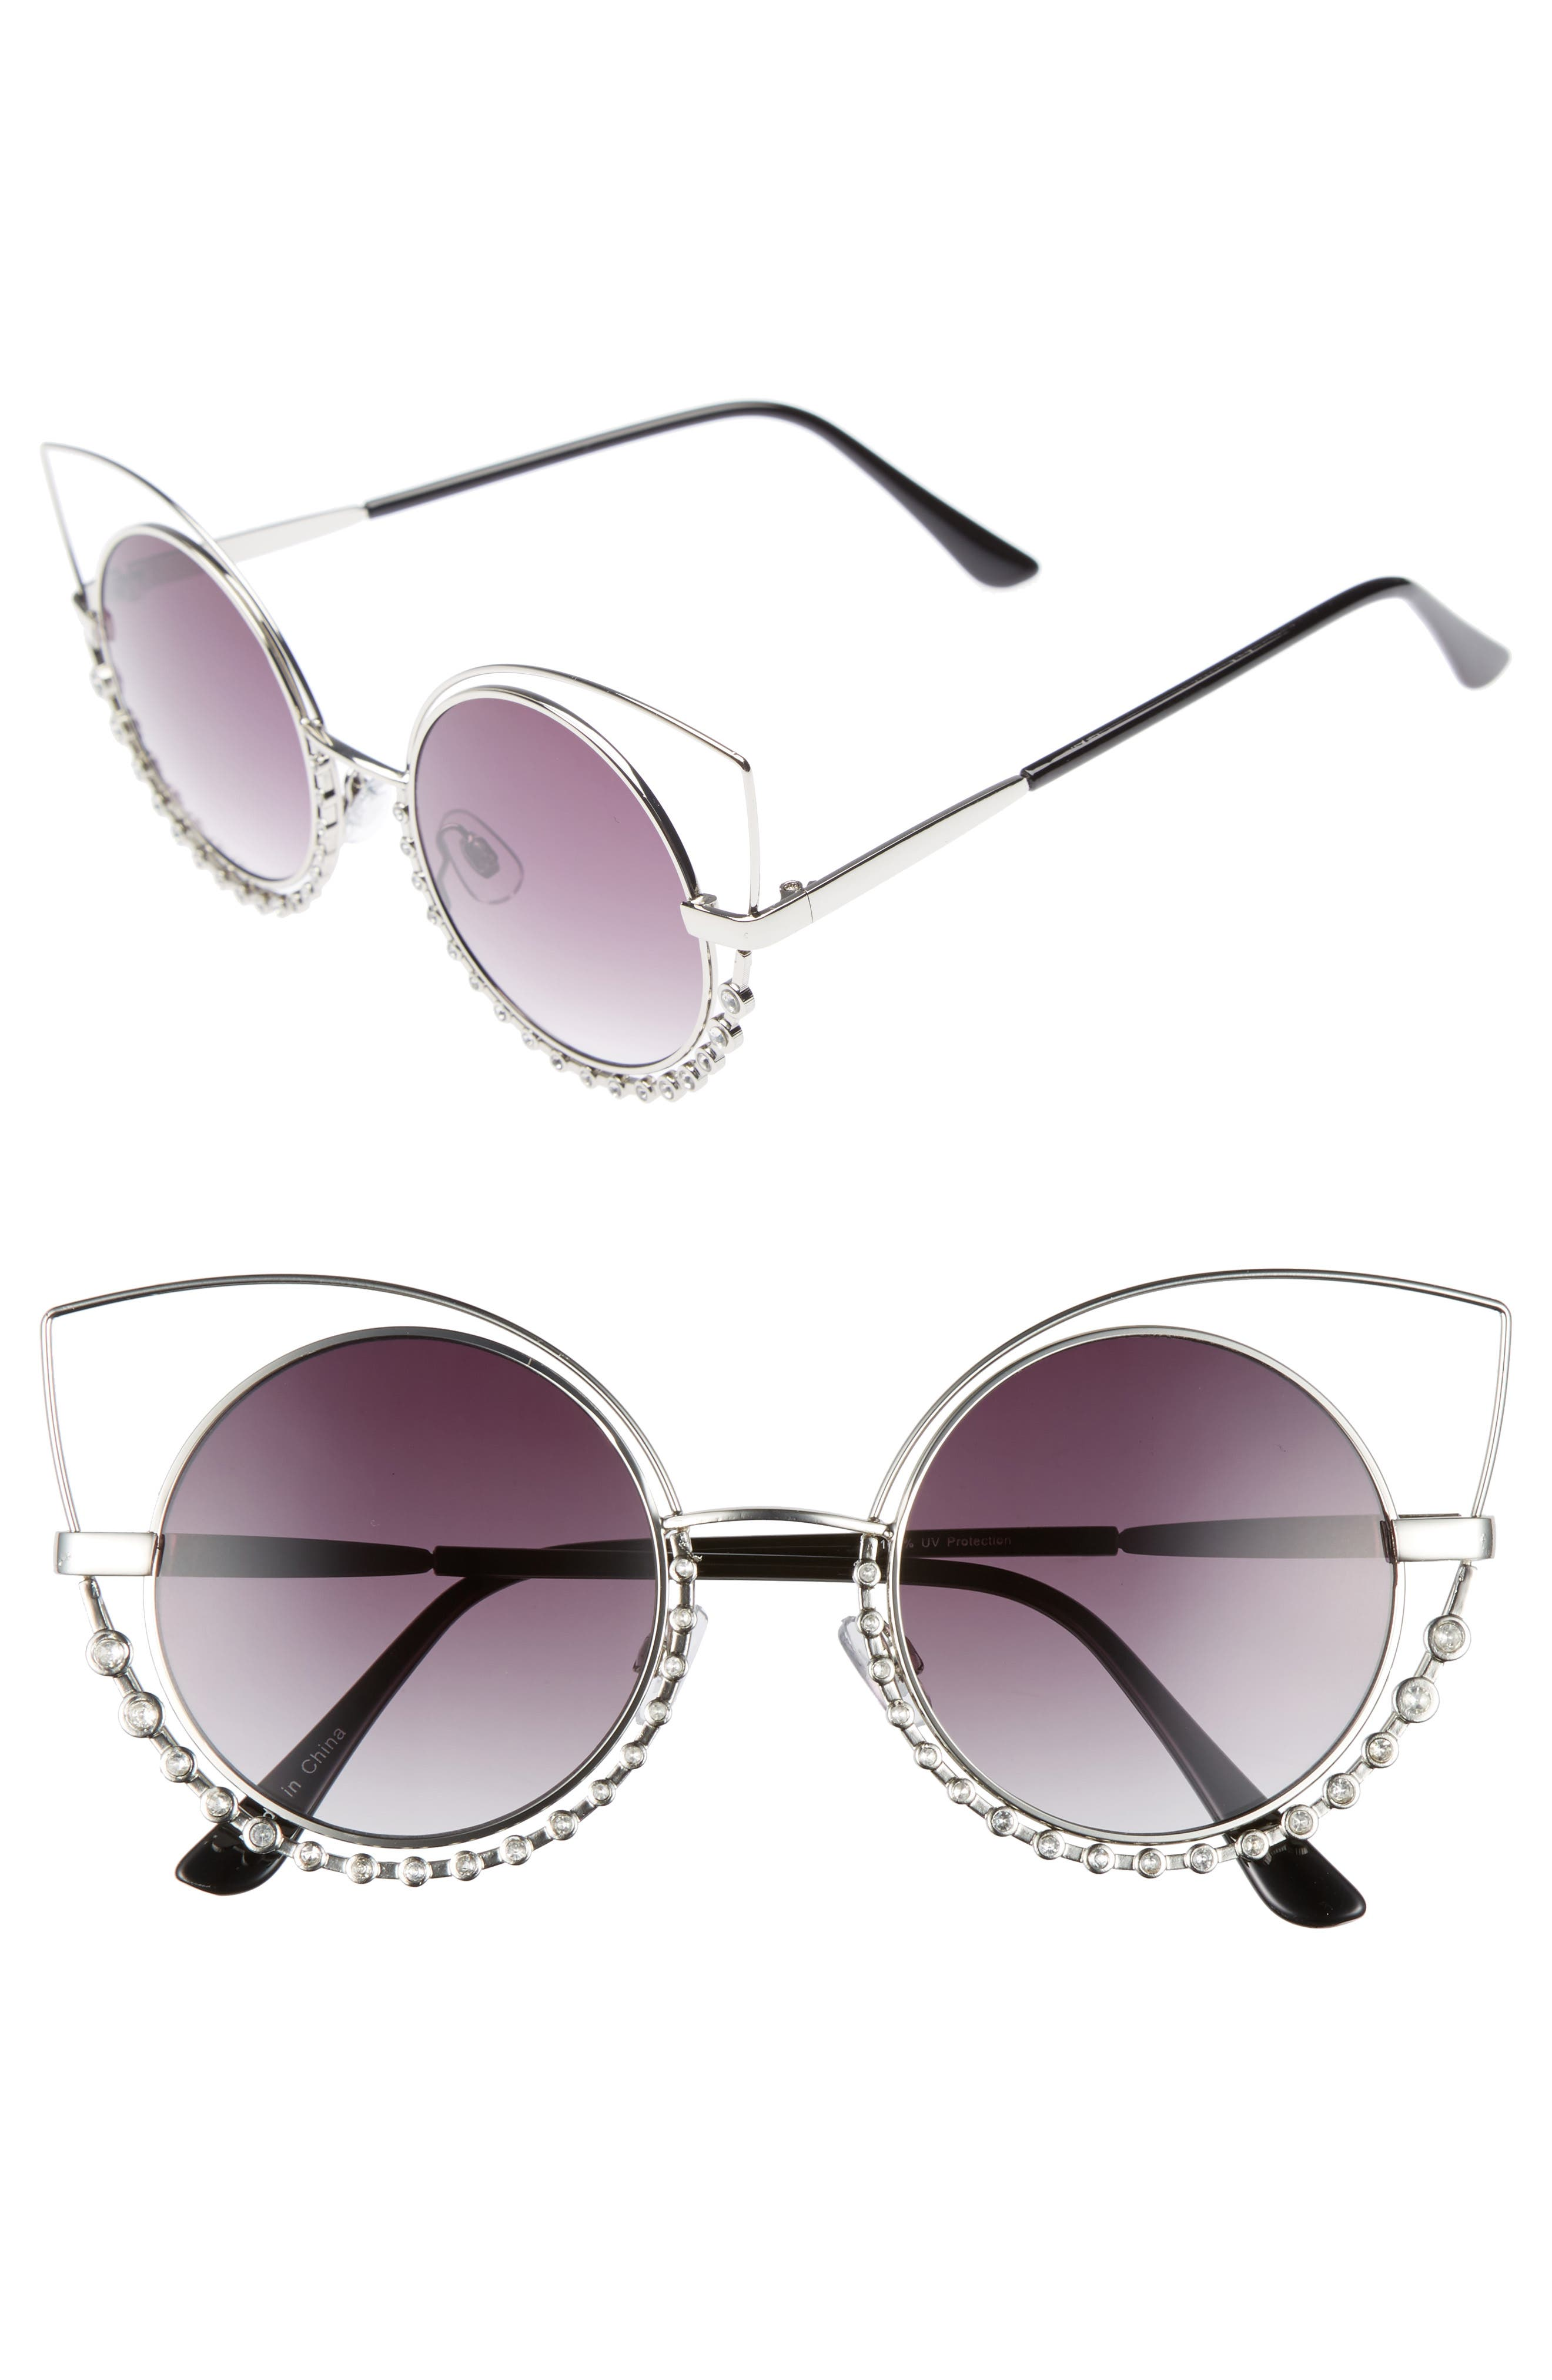 55mm Studded Round Sunglasses,                             Main thumbnail 1, color,                             040